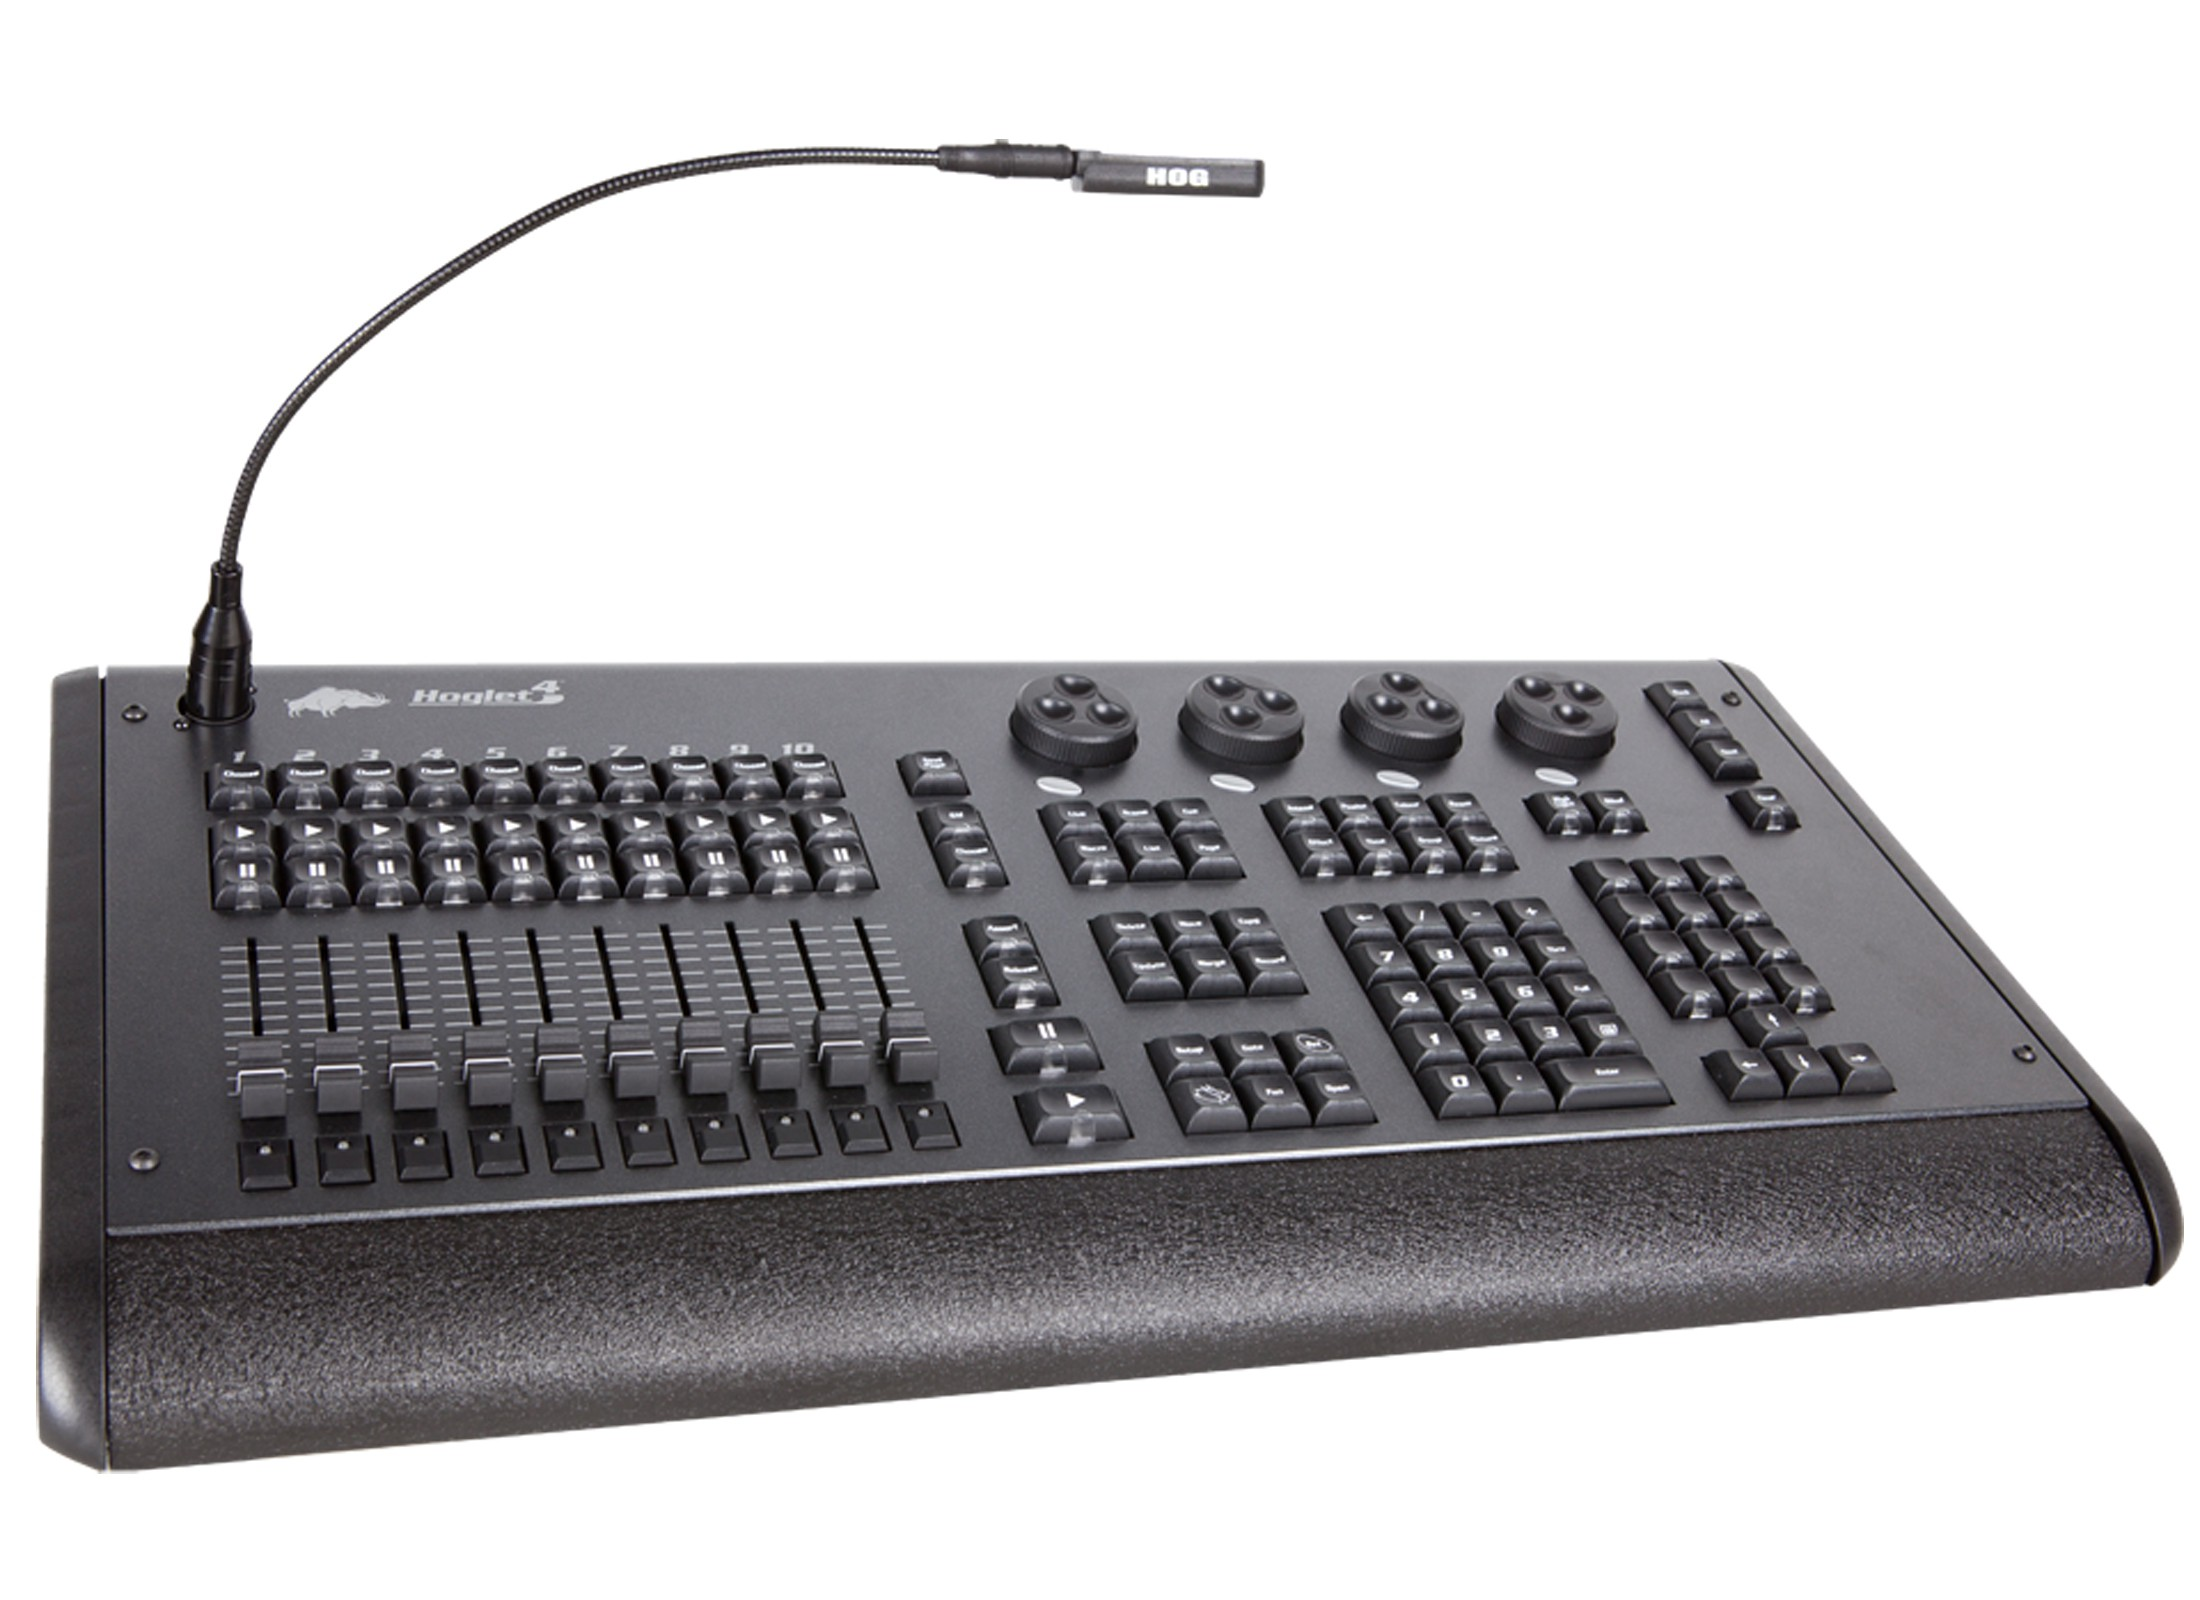 High End Systems Hoglet 4 Light Console Online At Low Prices At Huss ...